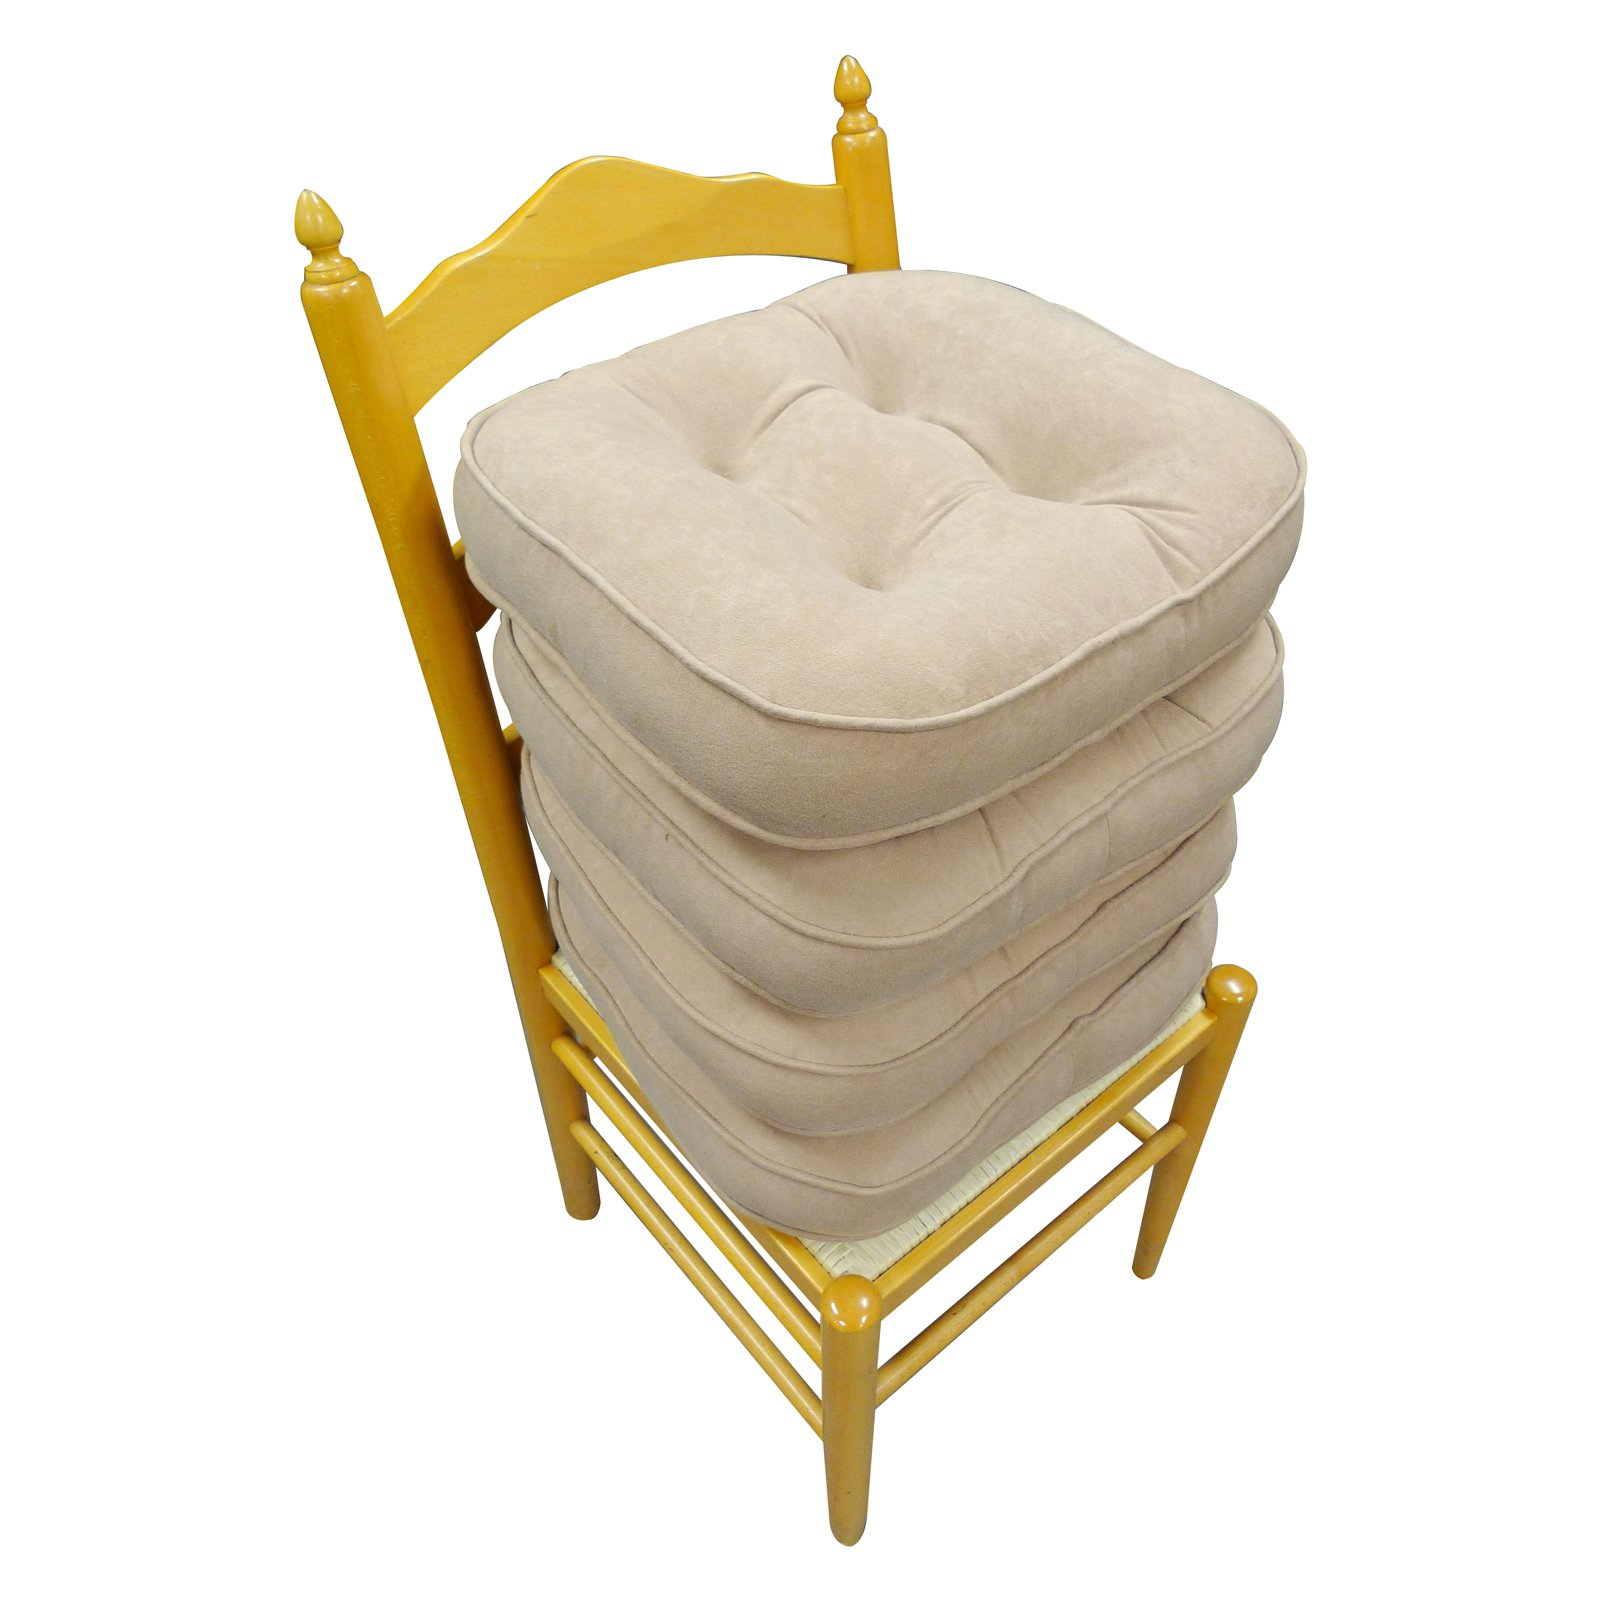 Kitchen chair cushions non slip – Kitchen ideas